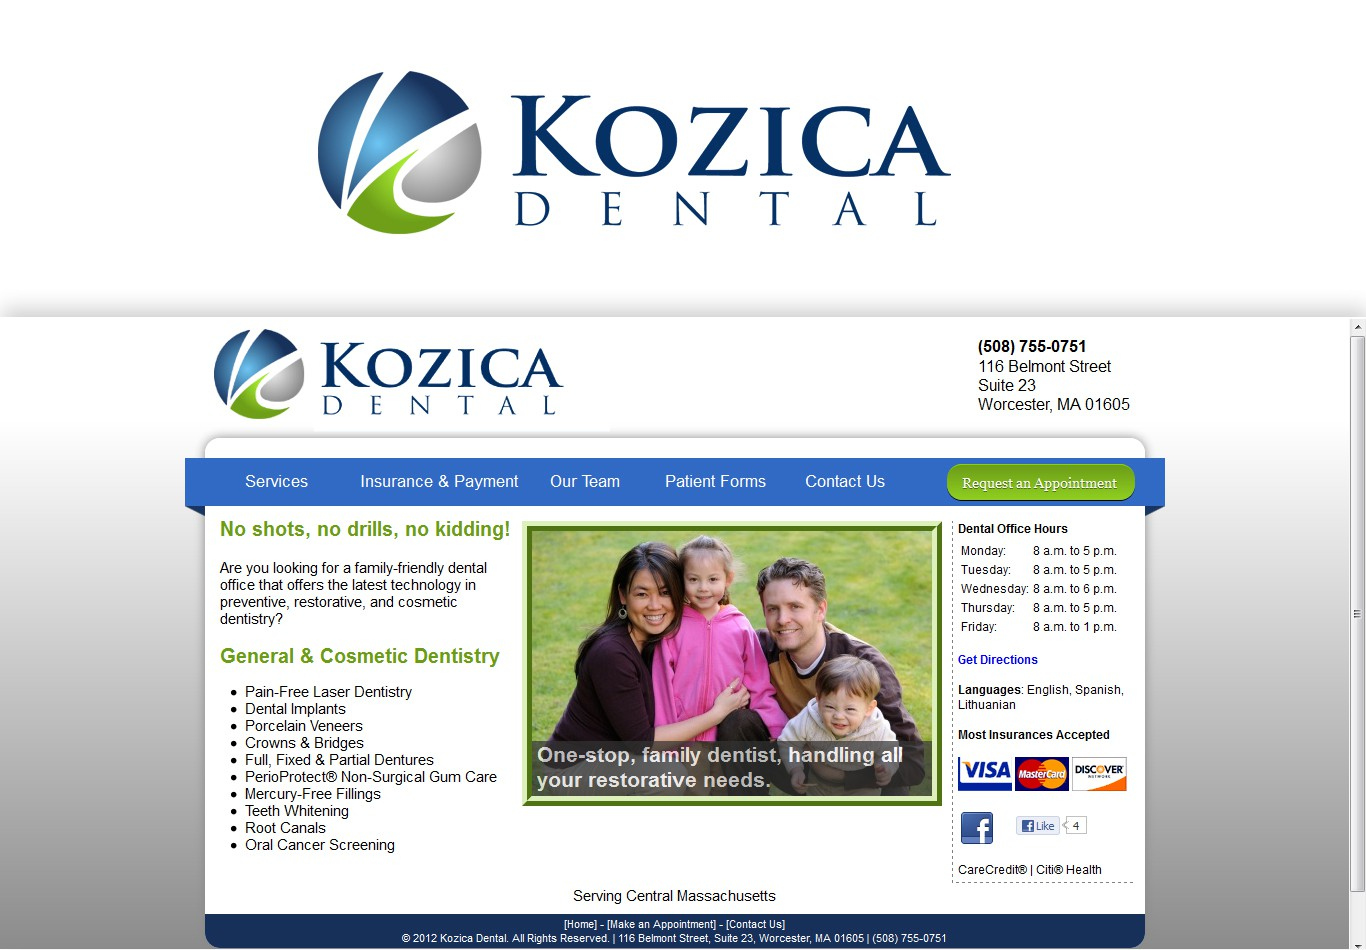 New logo wanted for Kozica Dental